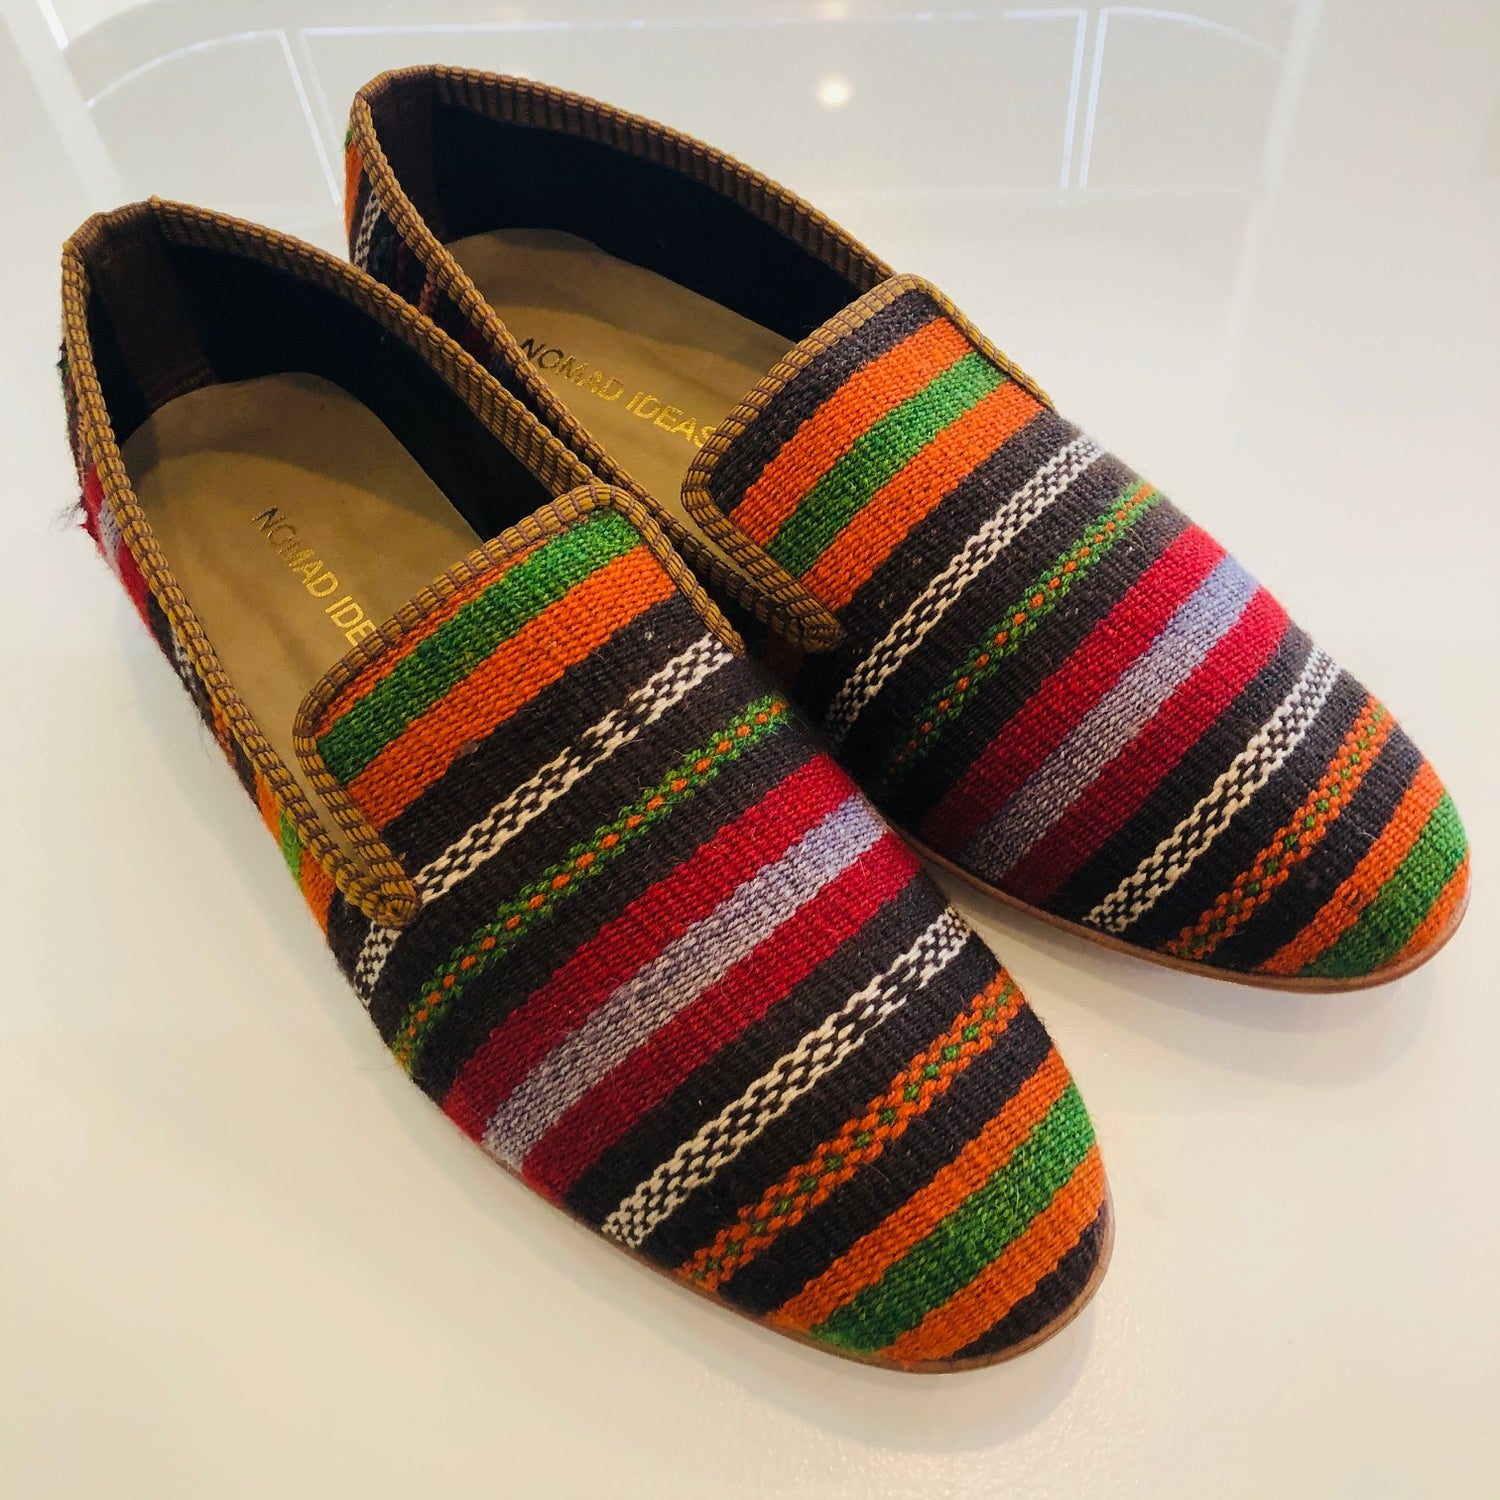 Turkish Kilim Slippers size 46 Euro (13 US)